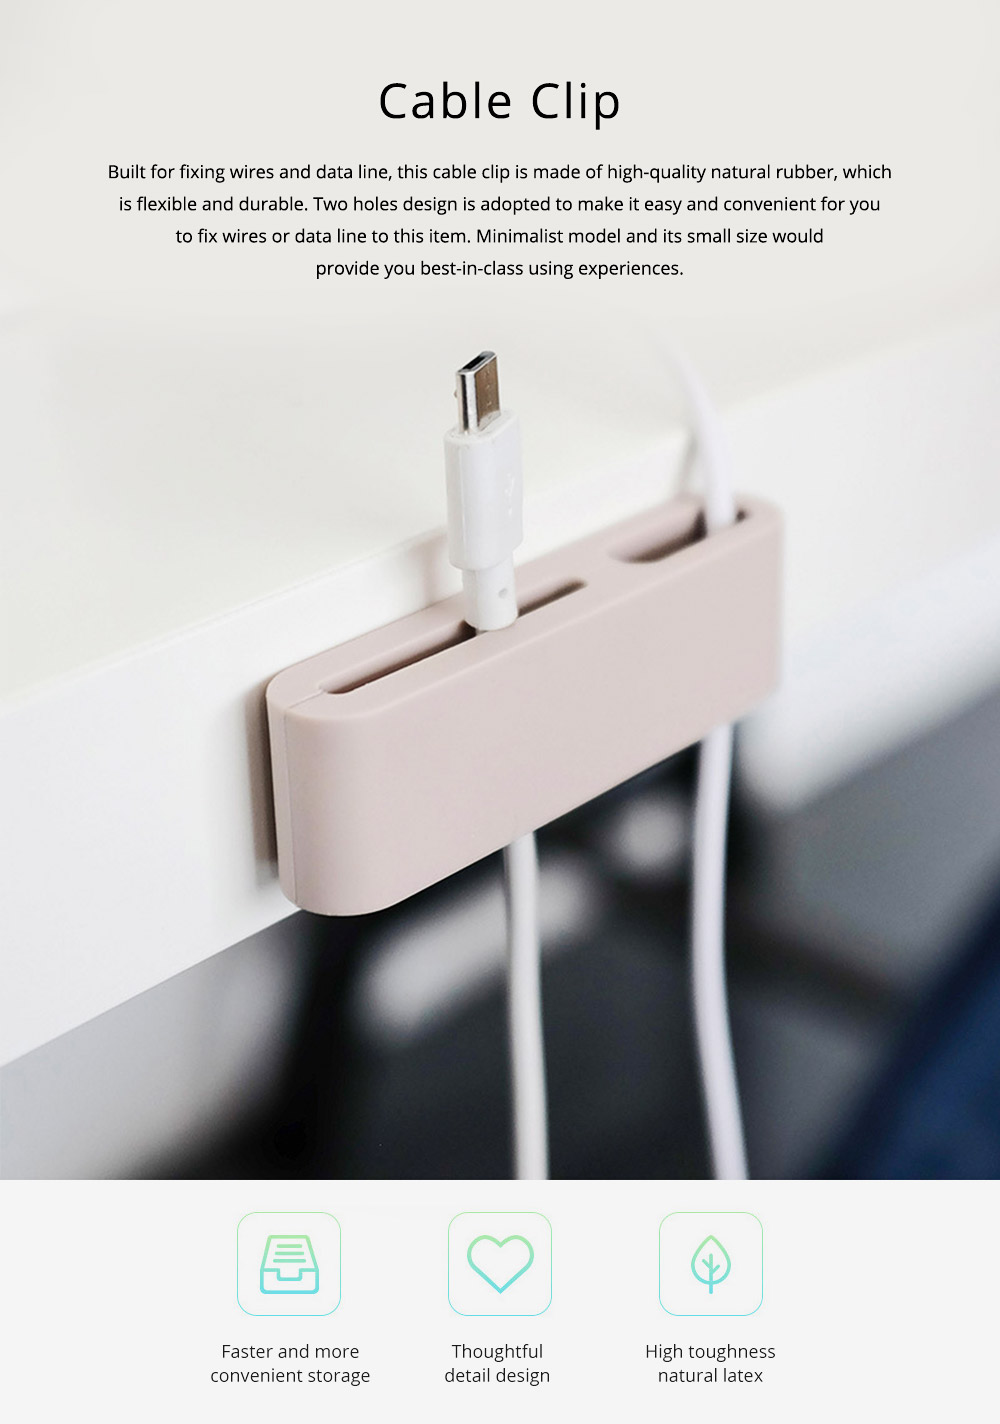 Minimalist Ultrasoft Natural Rubber Cable Clip Fixer, Multipurpose Wire USB Charger Data Line Organizer Holder 0